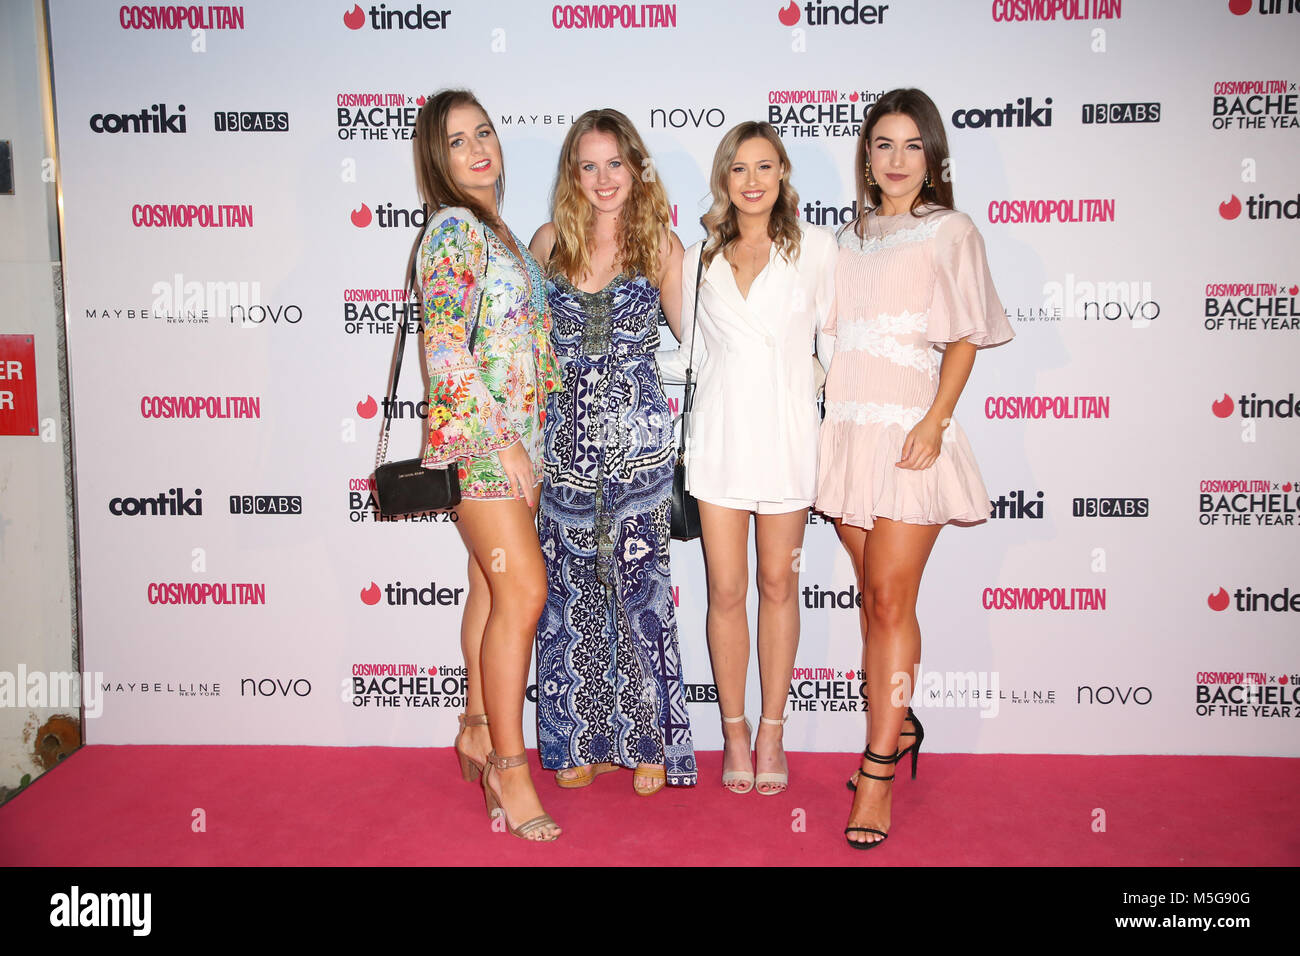 Sydney, Australia. 22nd February 2018.  Tbc attends the Cosmopolitan + Tinder annual Bachelor of the Year Award - Stock Image